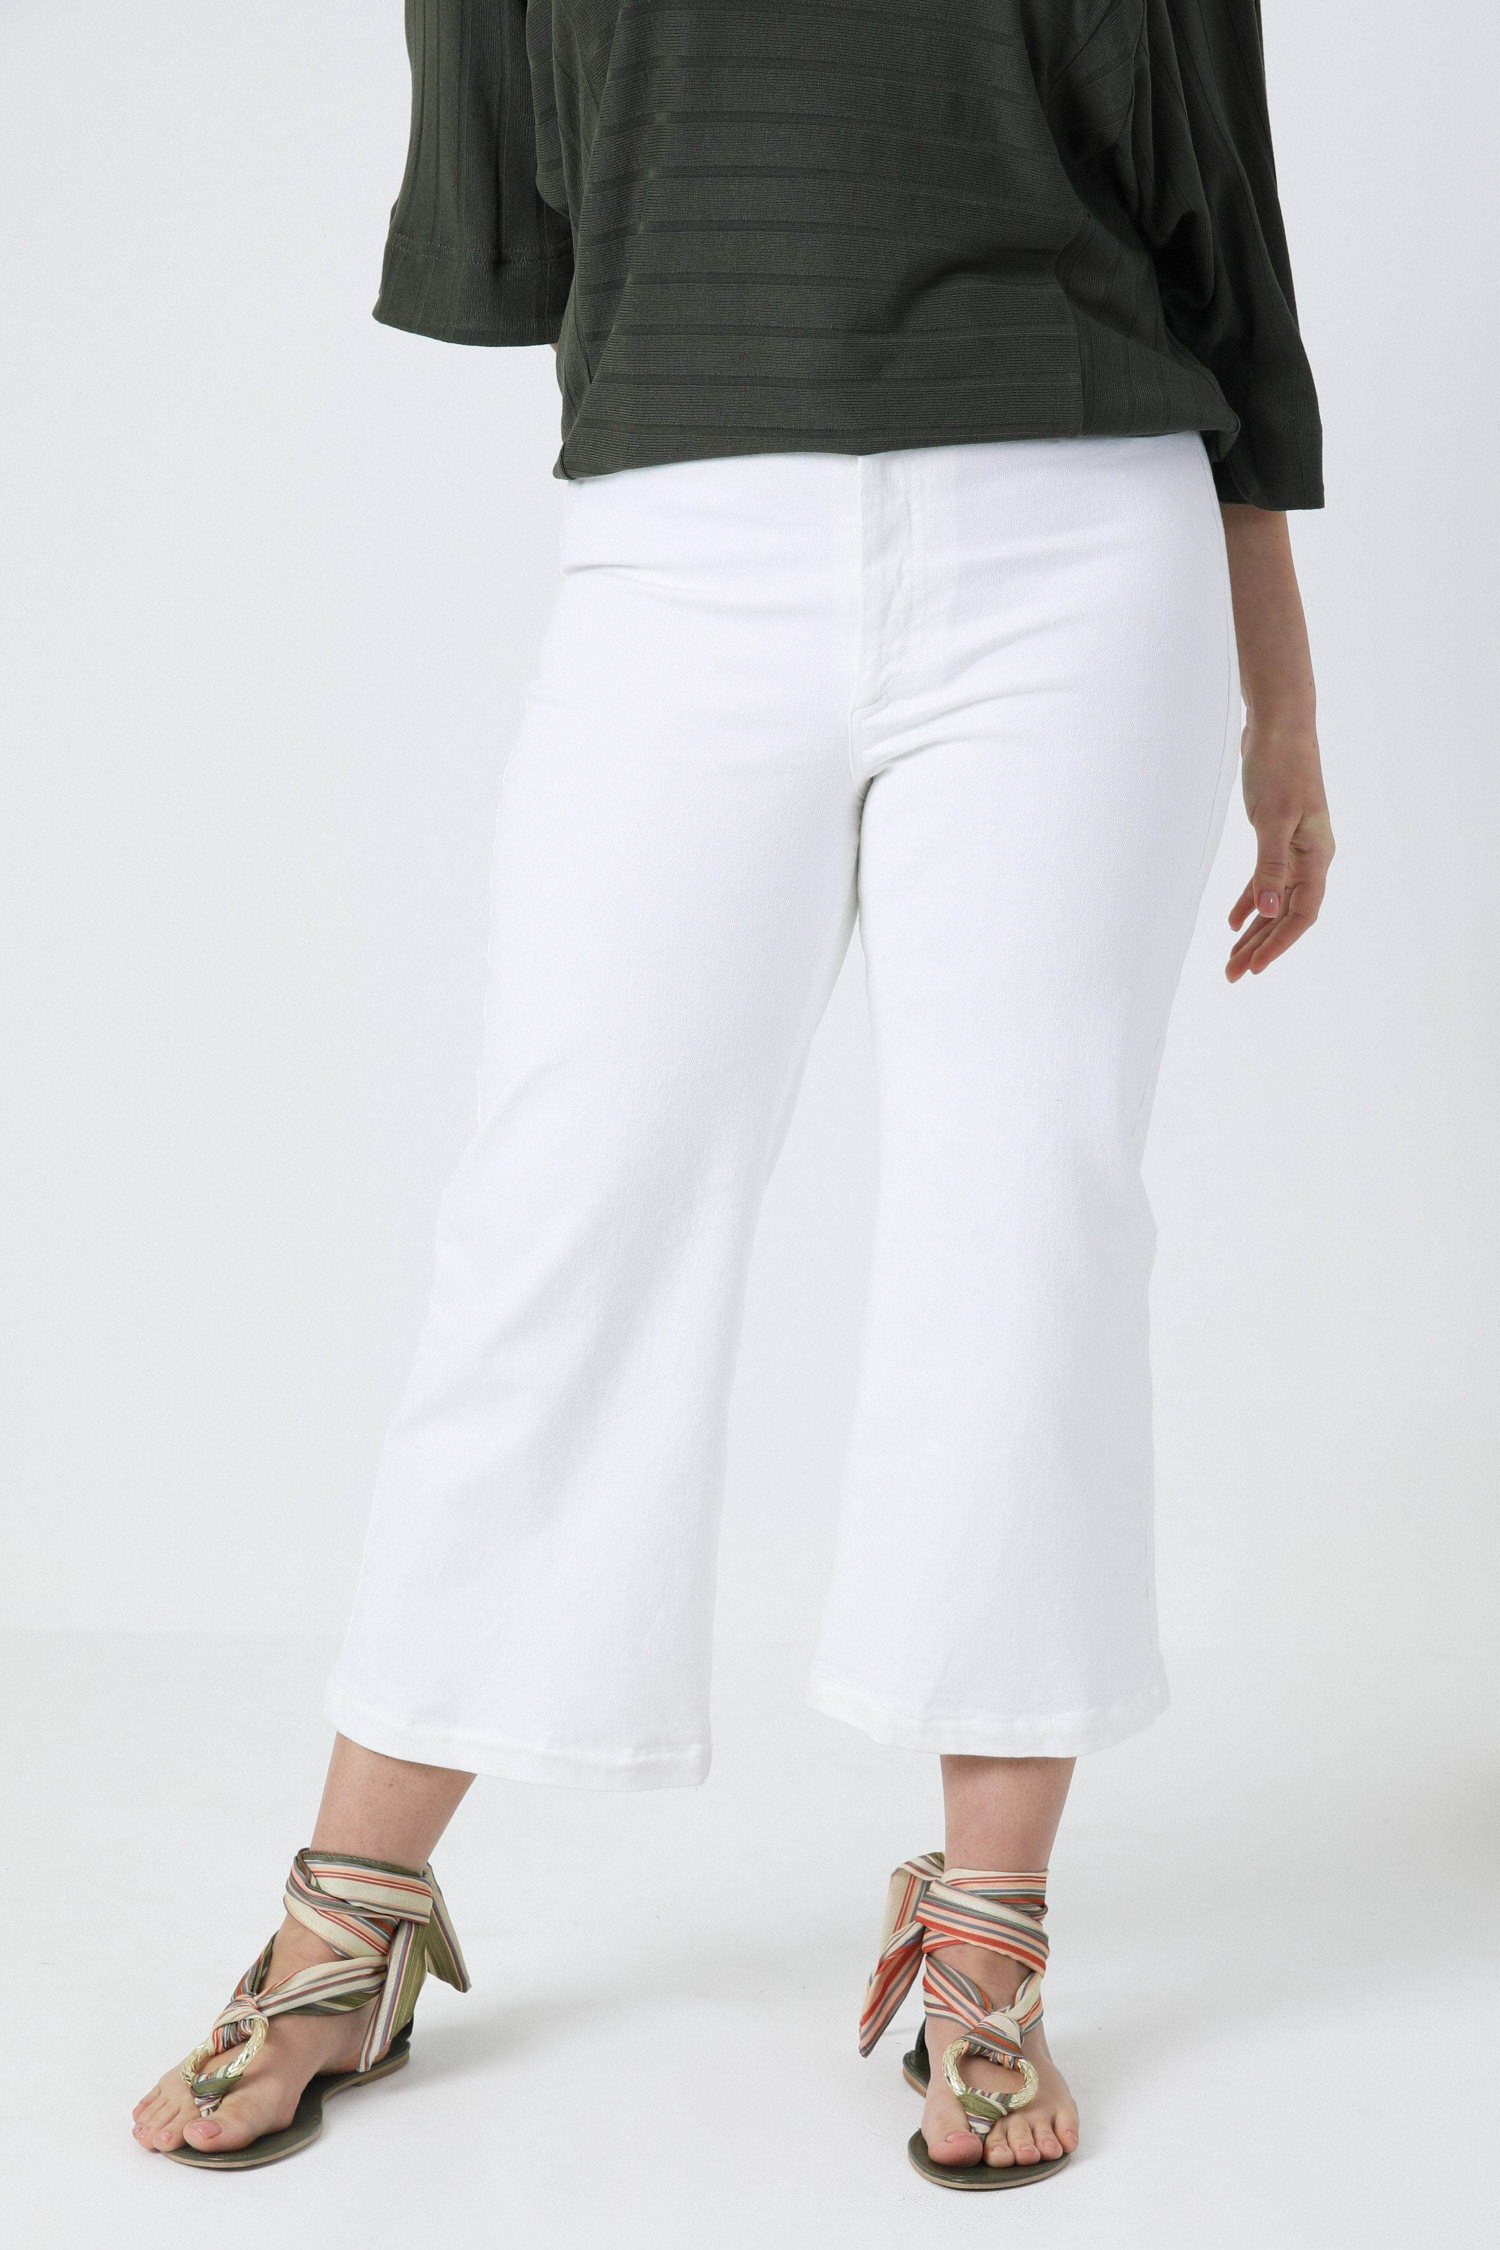 White jeans pants (Delivery 25/28 February)